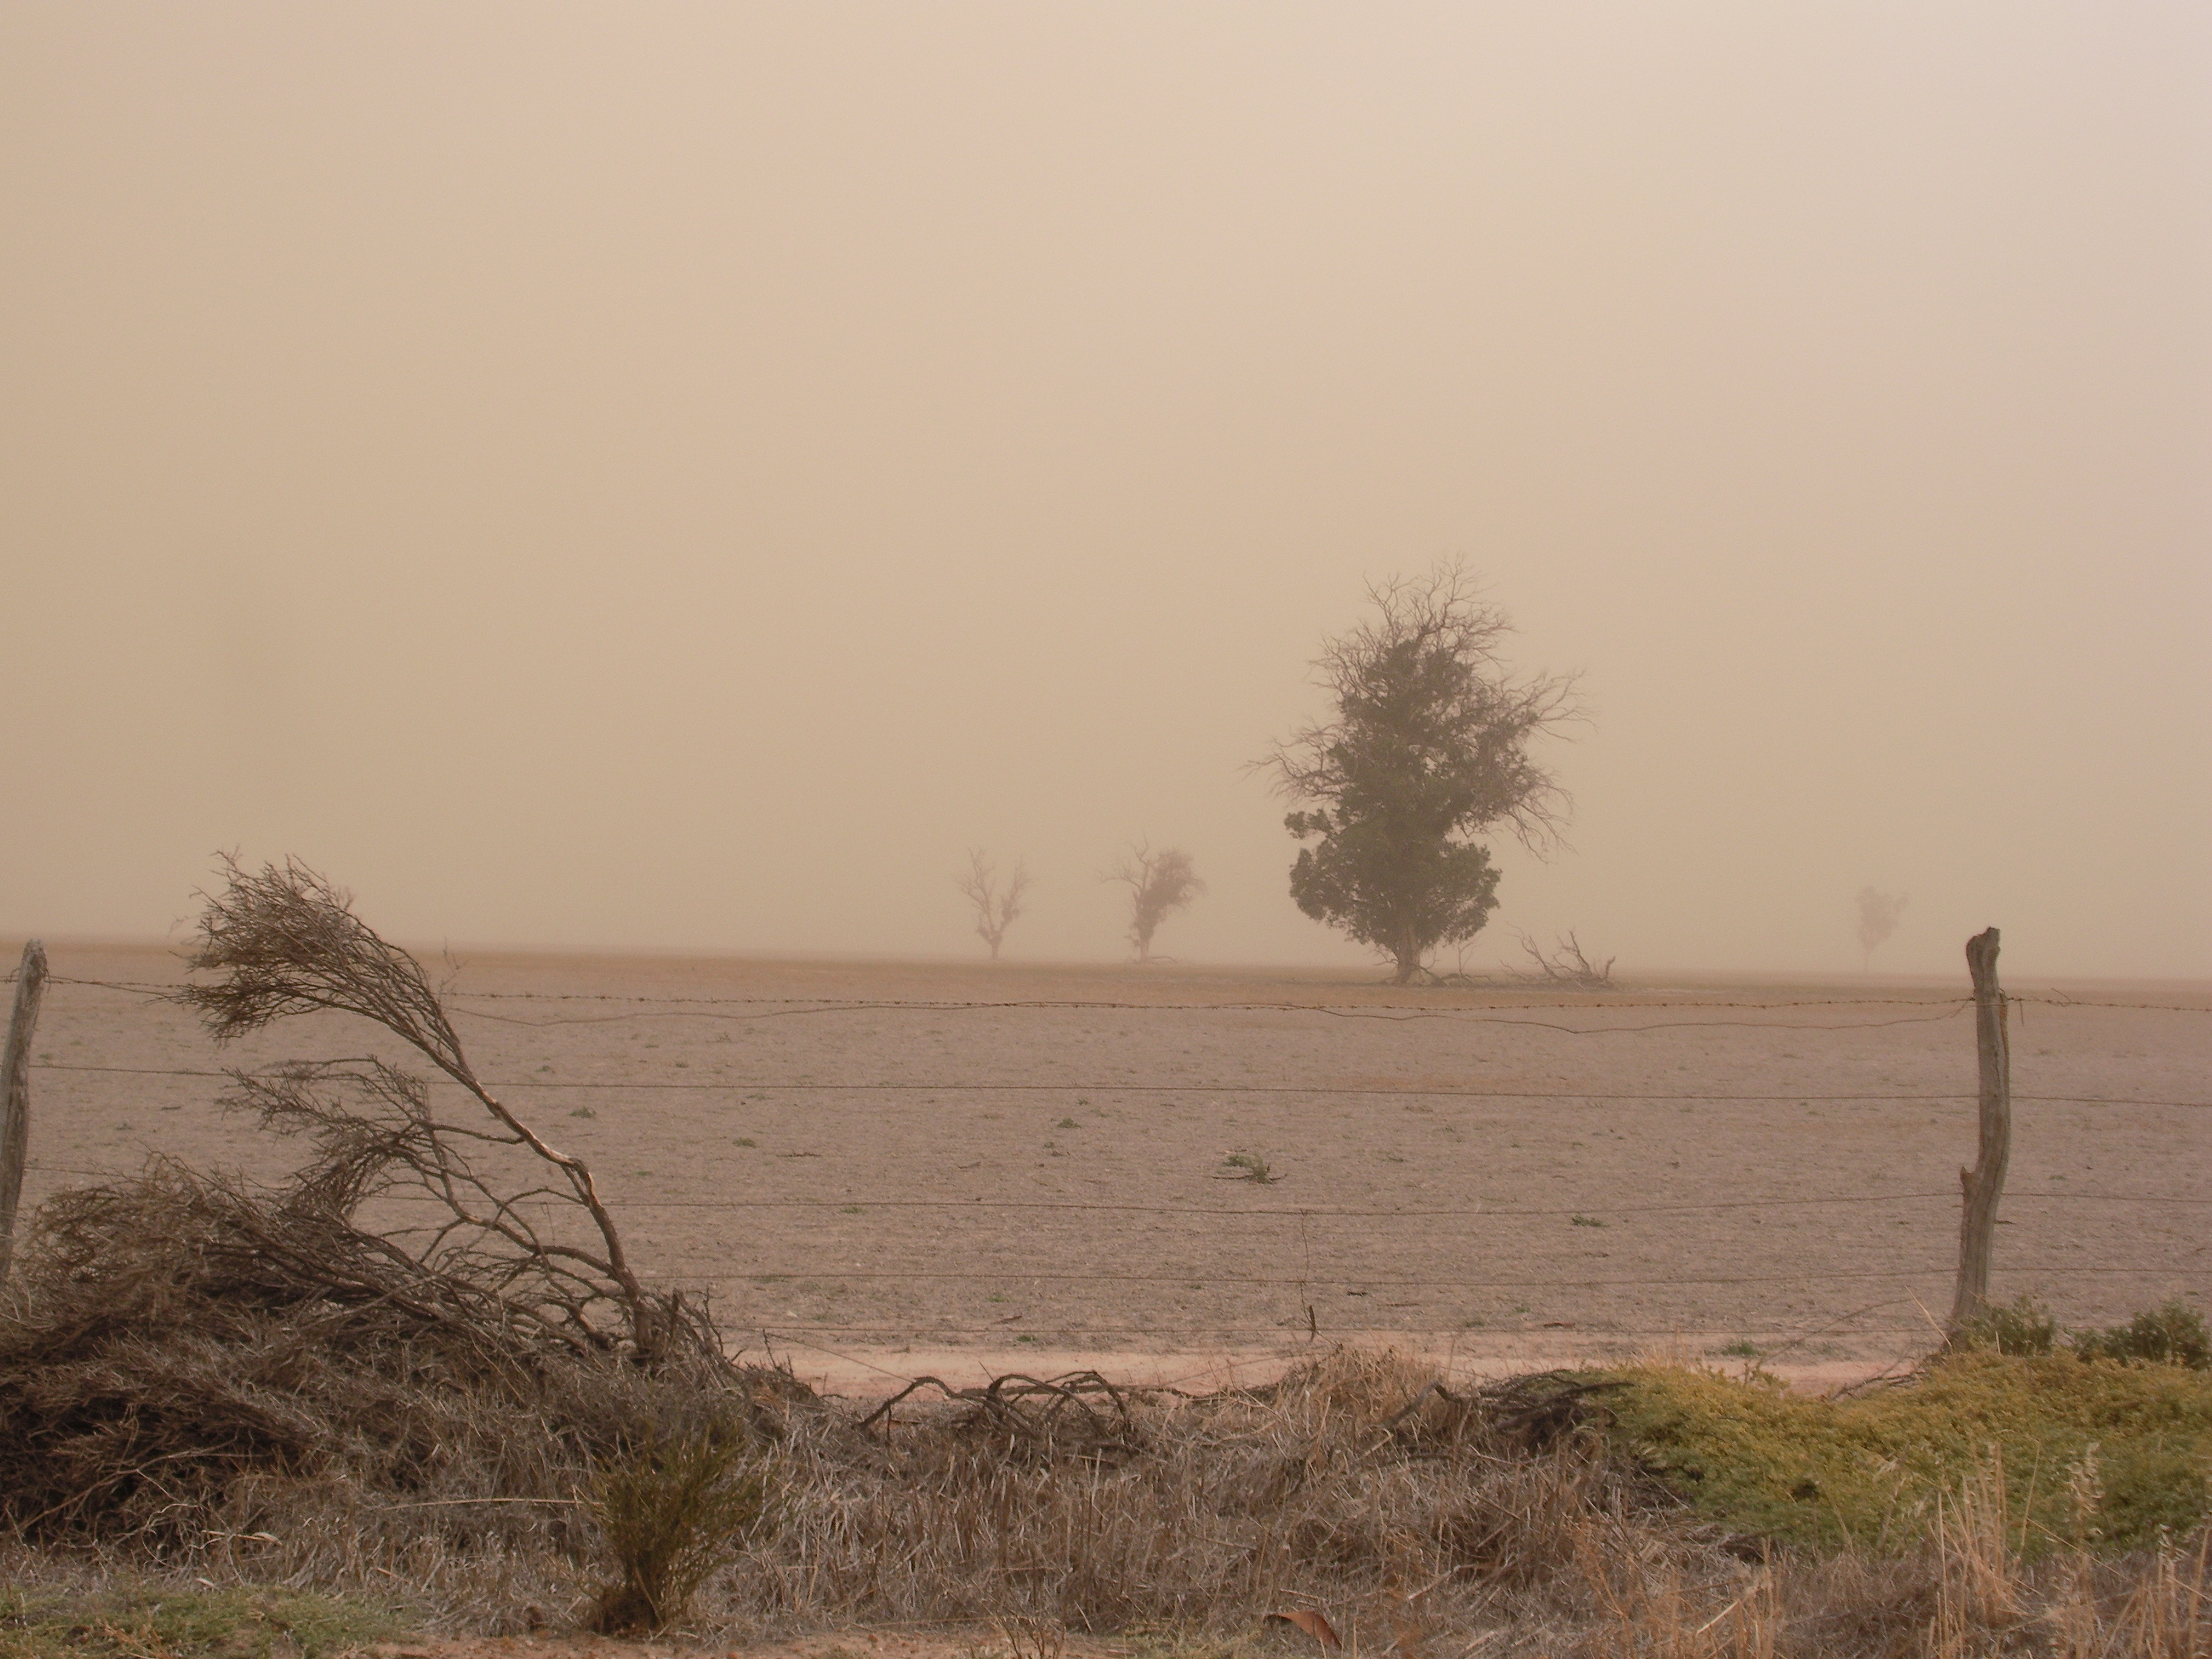 Results of high winds over Wheatbelt